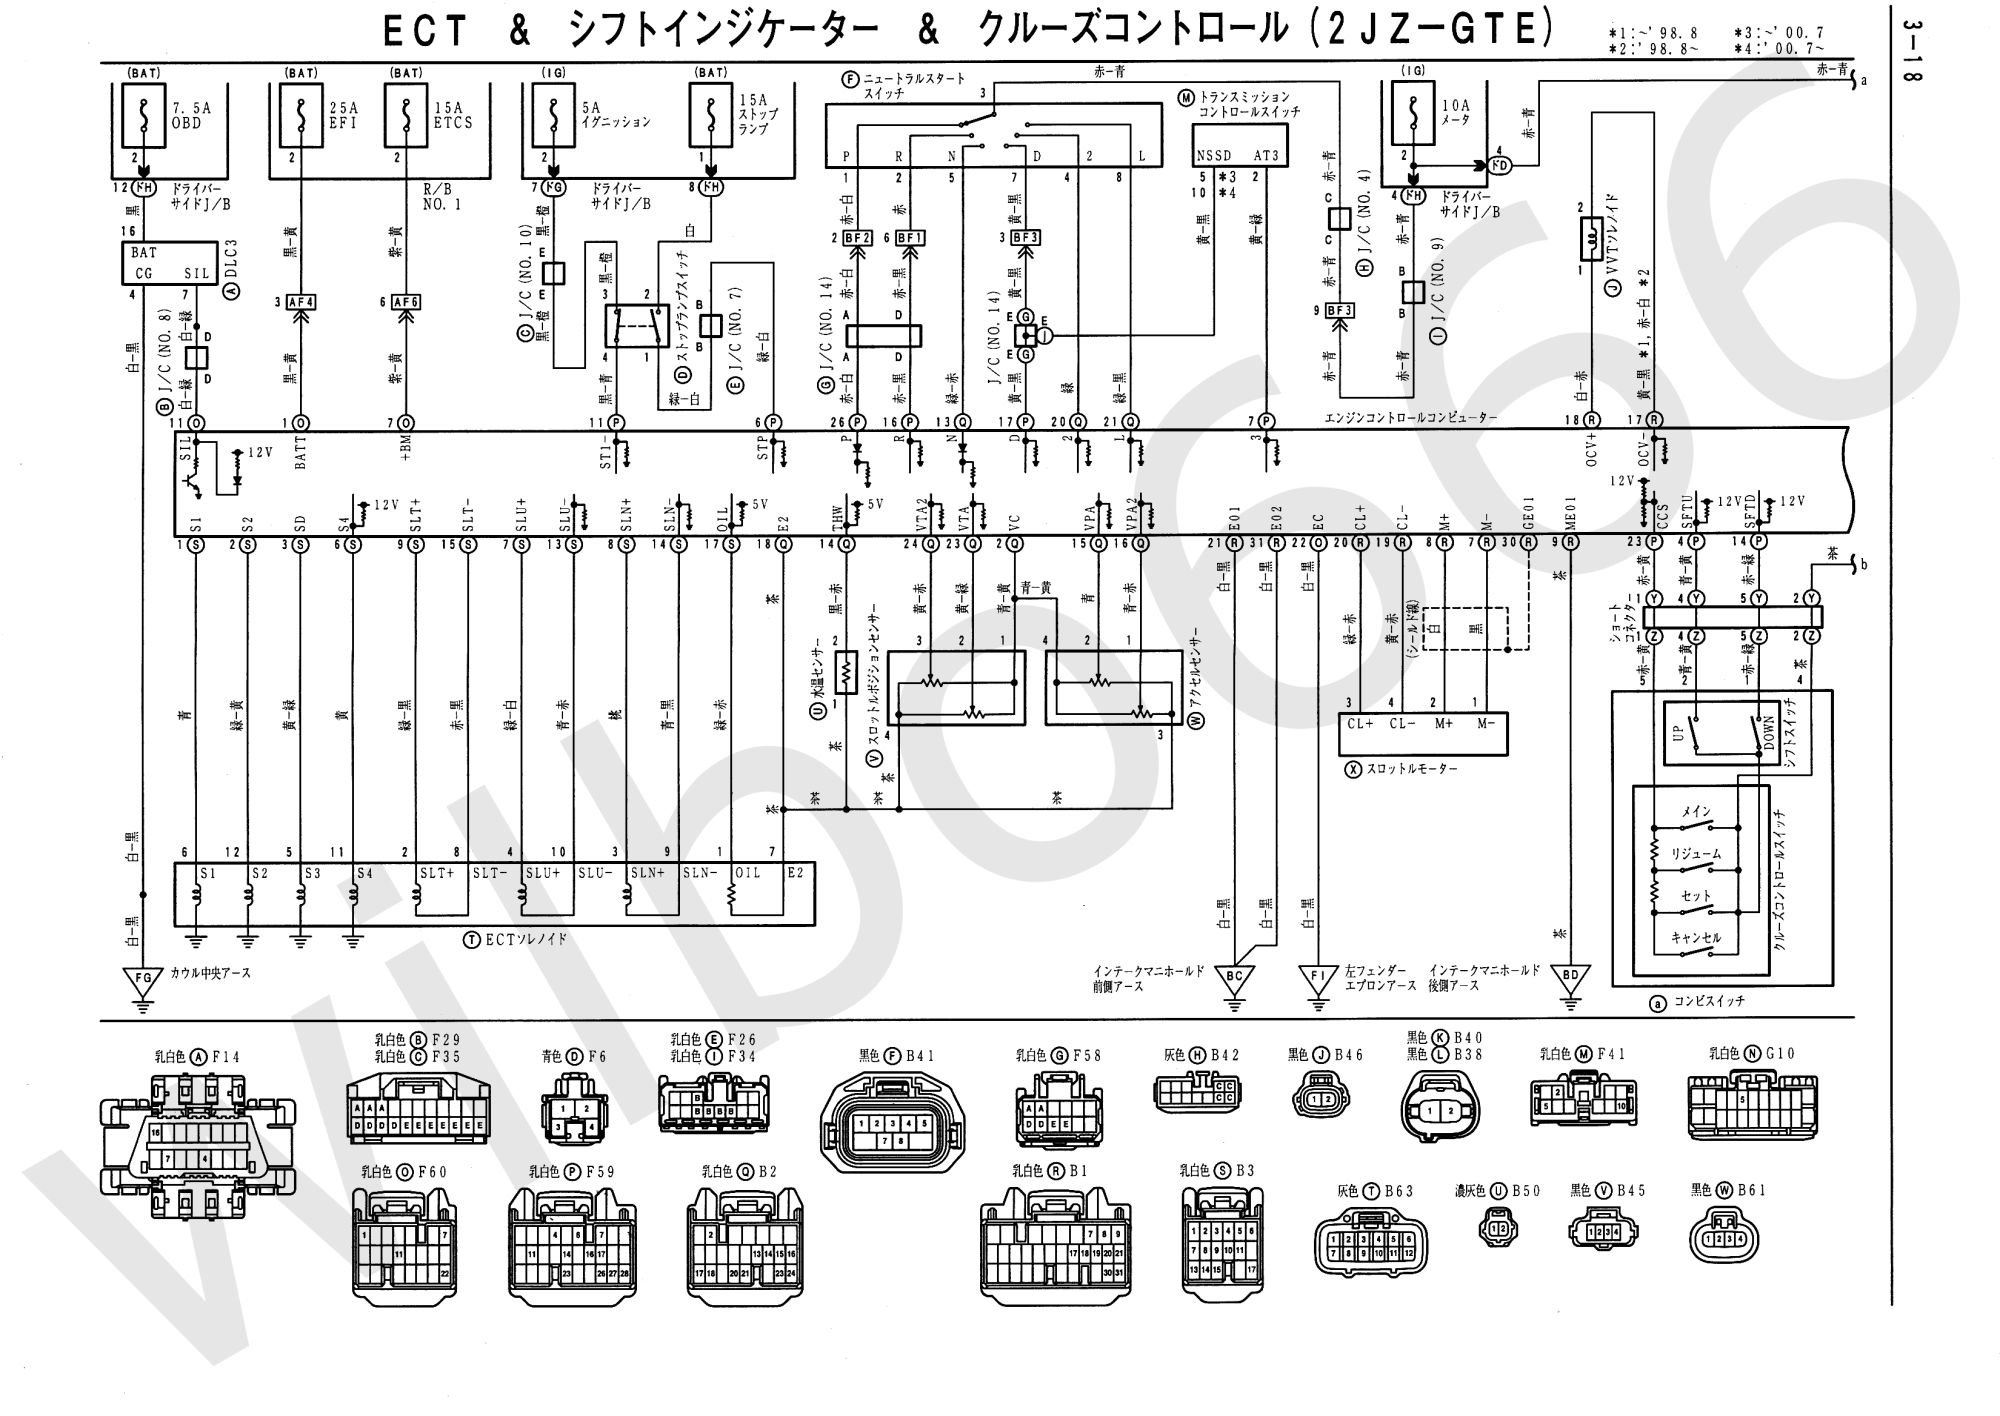 hight resolution of apexi safc wiring diagram 2jz ge reinvent your wiring diagram u2022 apexi vafc2 apexi safc